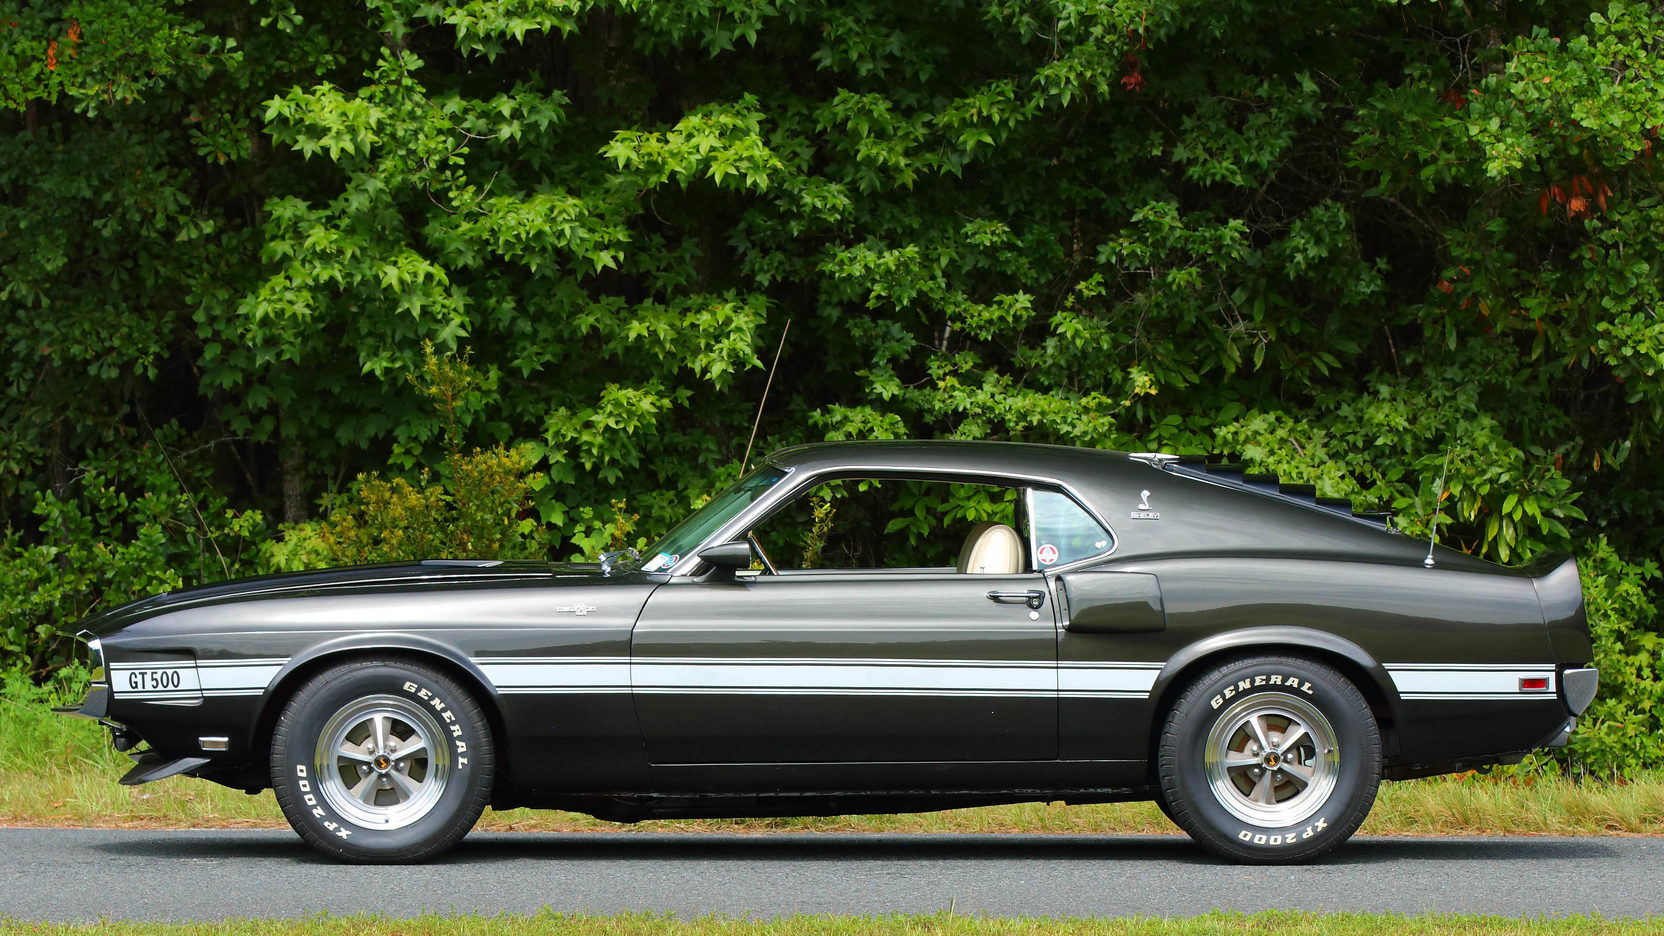 1970 Shelby GT500 Mustang